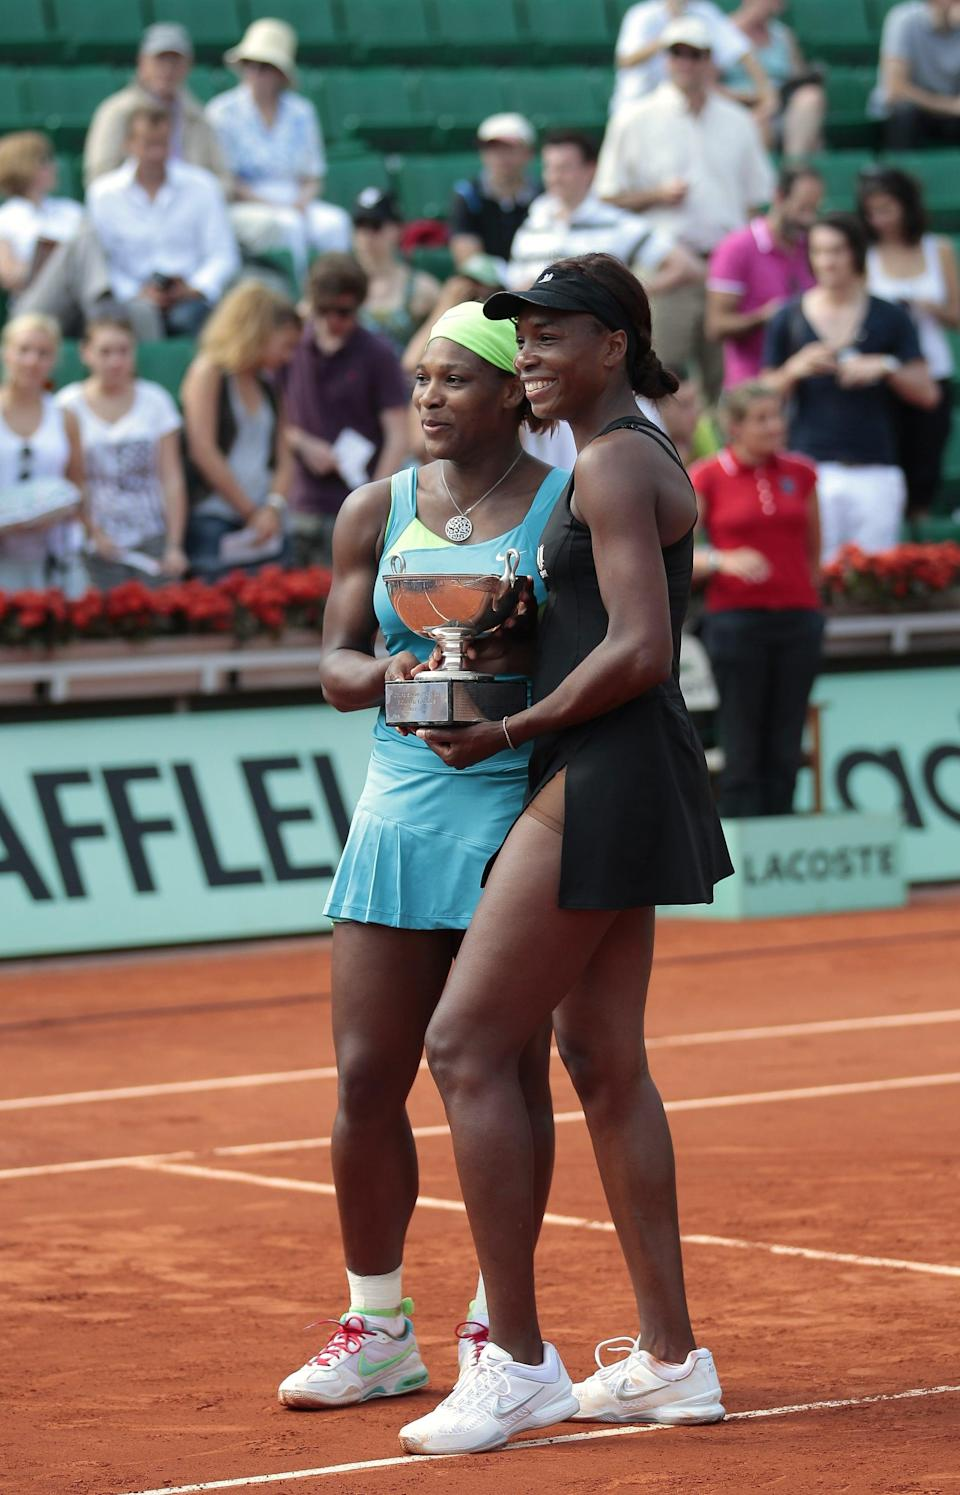 <p>At the 2010 French Open, sisters Venus and Serena Williams took the winners' cup when they defeated Czech Kveta Peschke and Katarina Srebotnik of Slovenia. They coordinated in tennis dresses, Serena in sky blue Nike and Venus in her own line, EleVen, which came complete with a matching visor.</p>